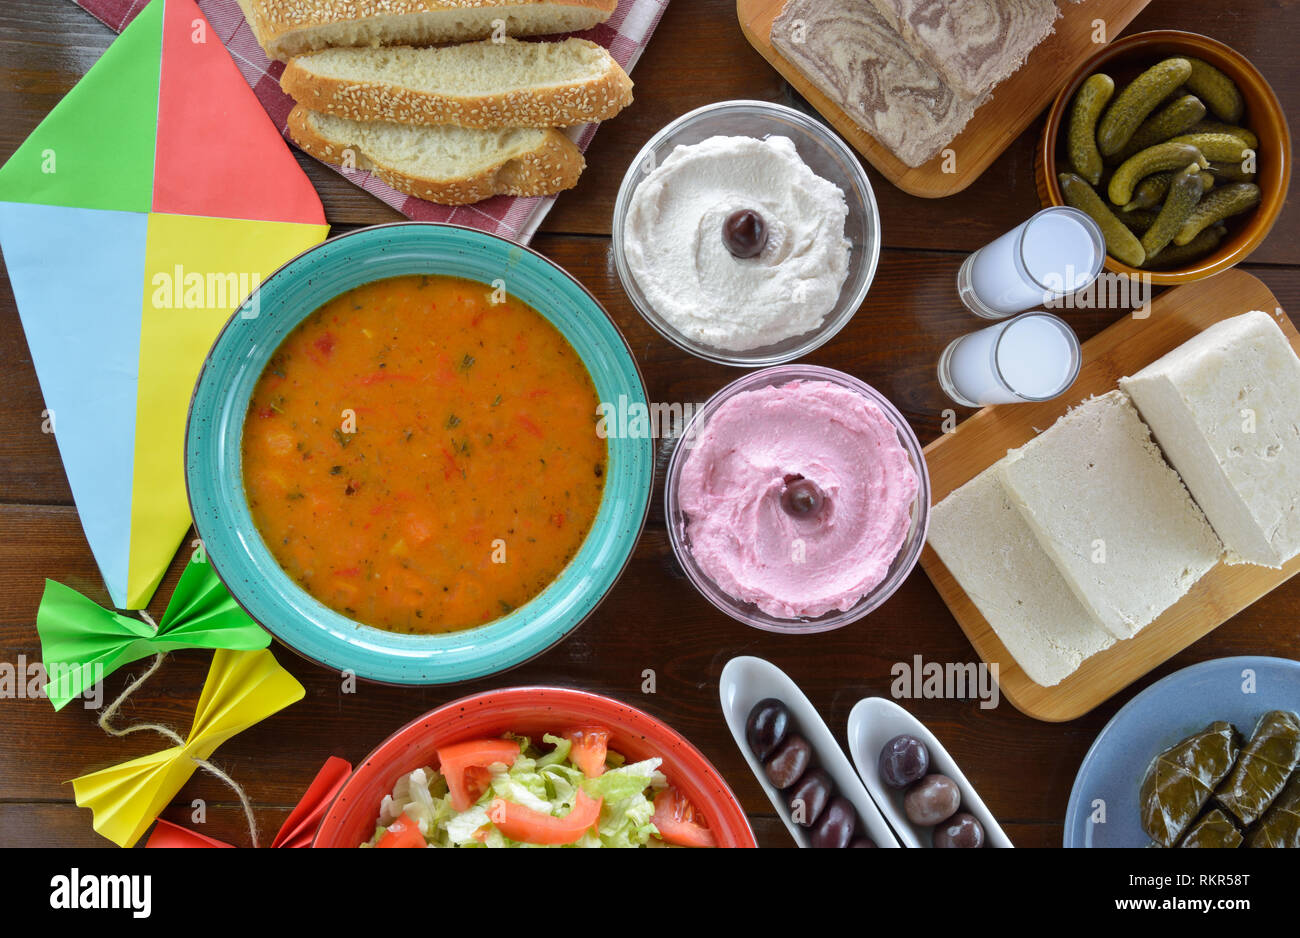 Fasting food for Clean Monday and a kite on wooden table - Stock Image